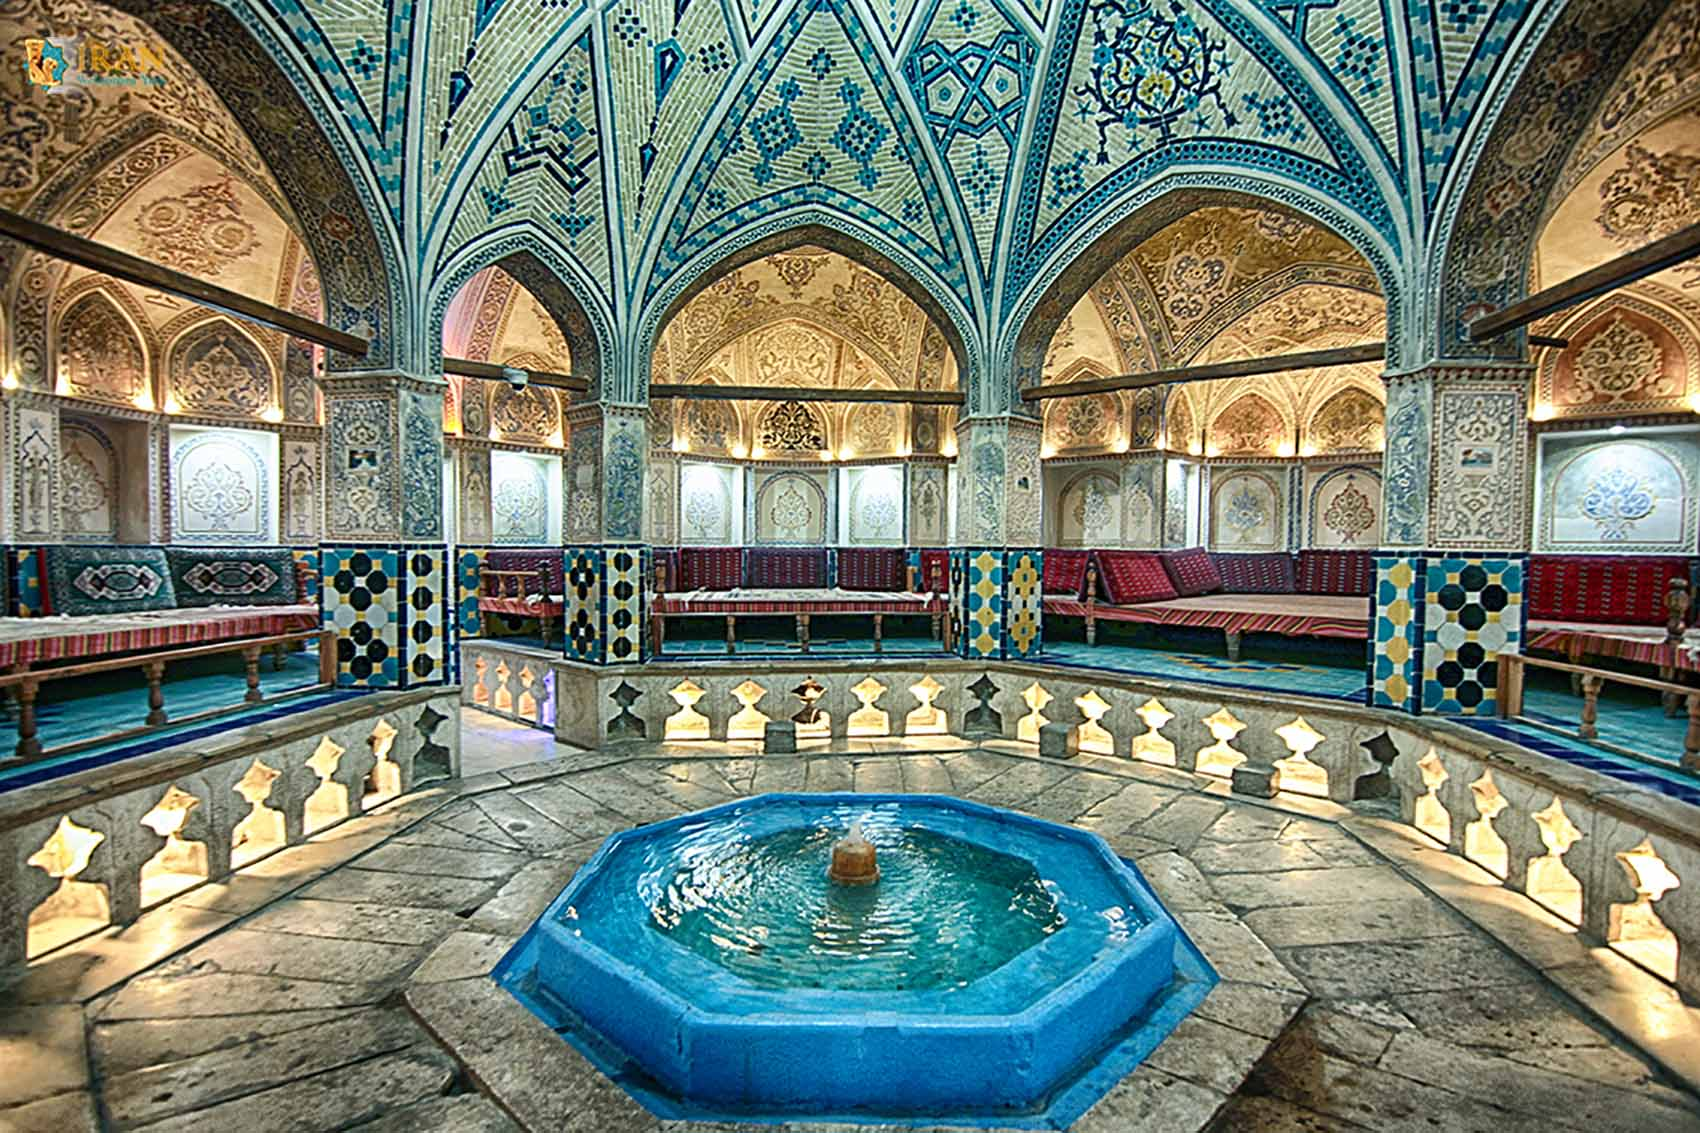 Tr2p,Kashan,Iran,Sultanmirahmad bath, Kashan tours, Iran welcomesyou tour & travel agency,Iran country,Iran Attractions